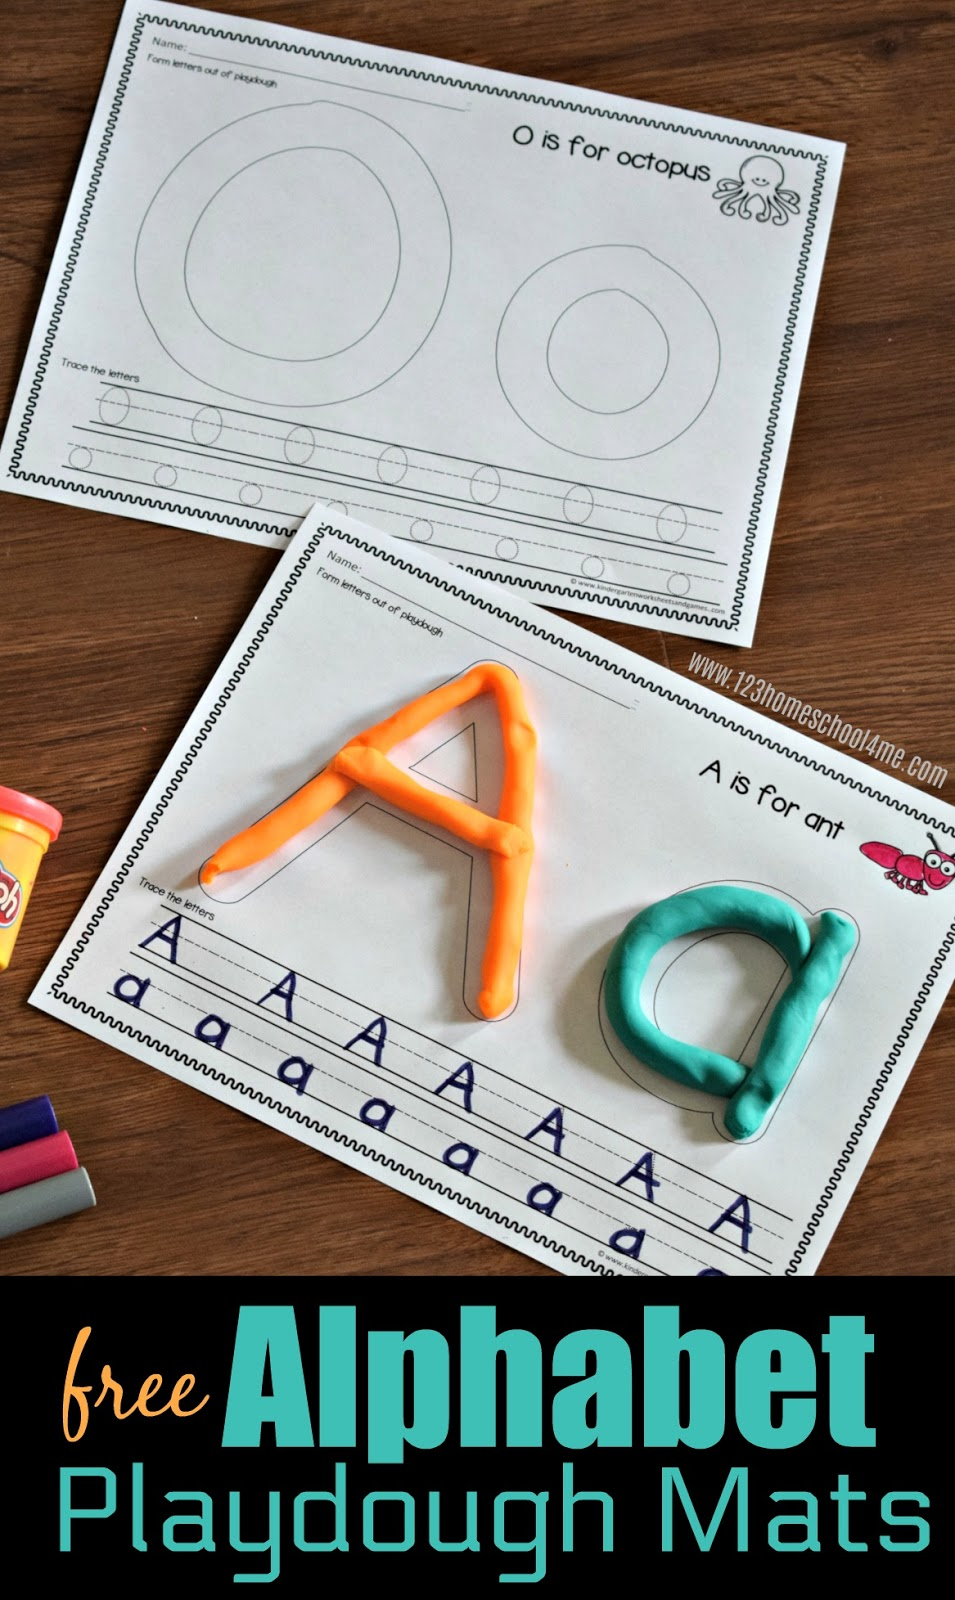 Fe B B Fc D Dbff D Cc Cb further Ddac B A Cebb Dc Fbcaa F also Trace And Write Alphabet R moreover The Letter Y moreover Image Id Acff Bc C F Ce E E Bcd. on letter r worksheets for kindergarten